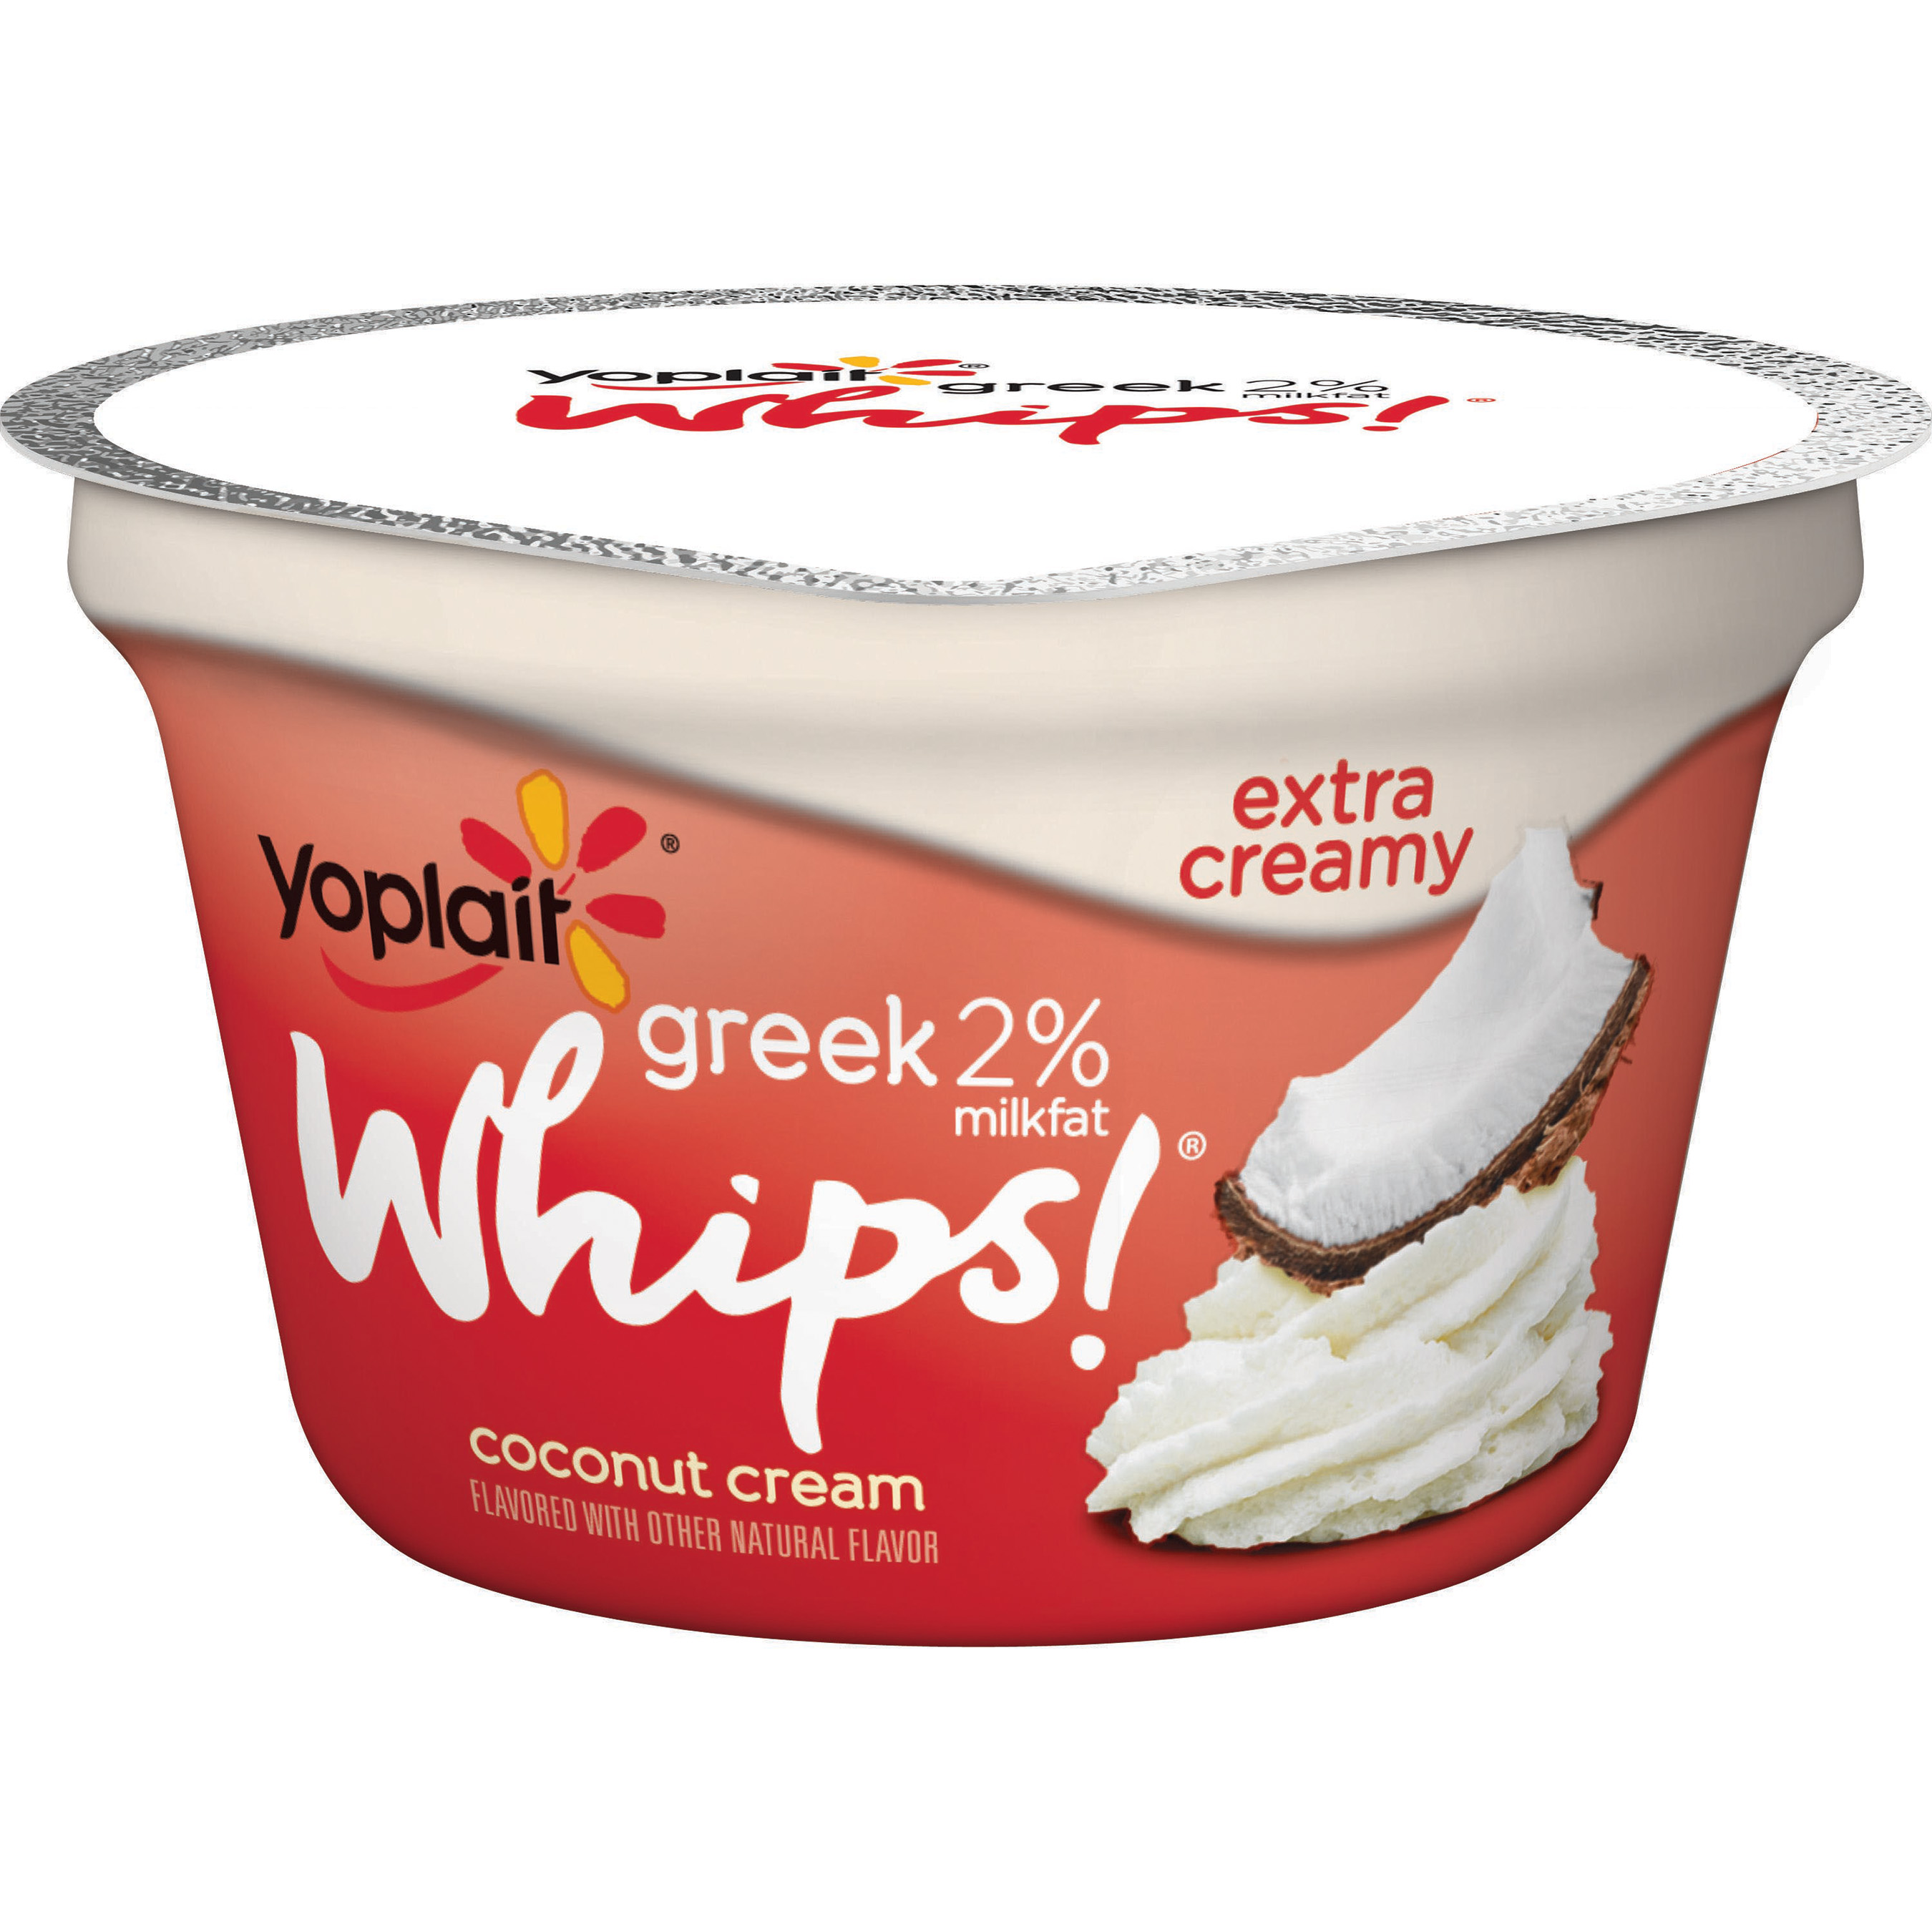 Yoplait Greek 2% Whips!